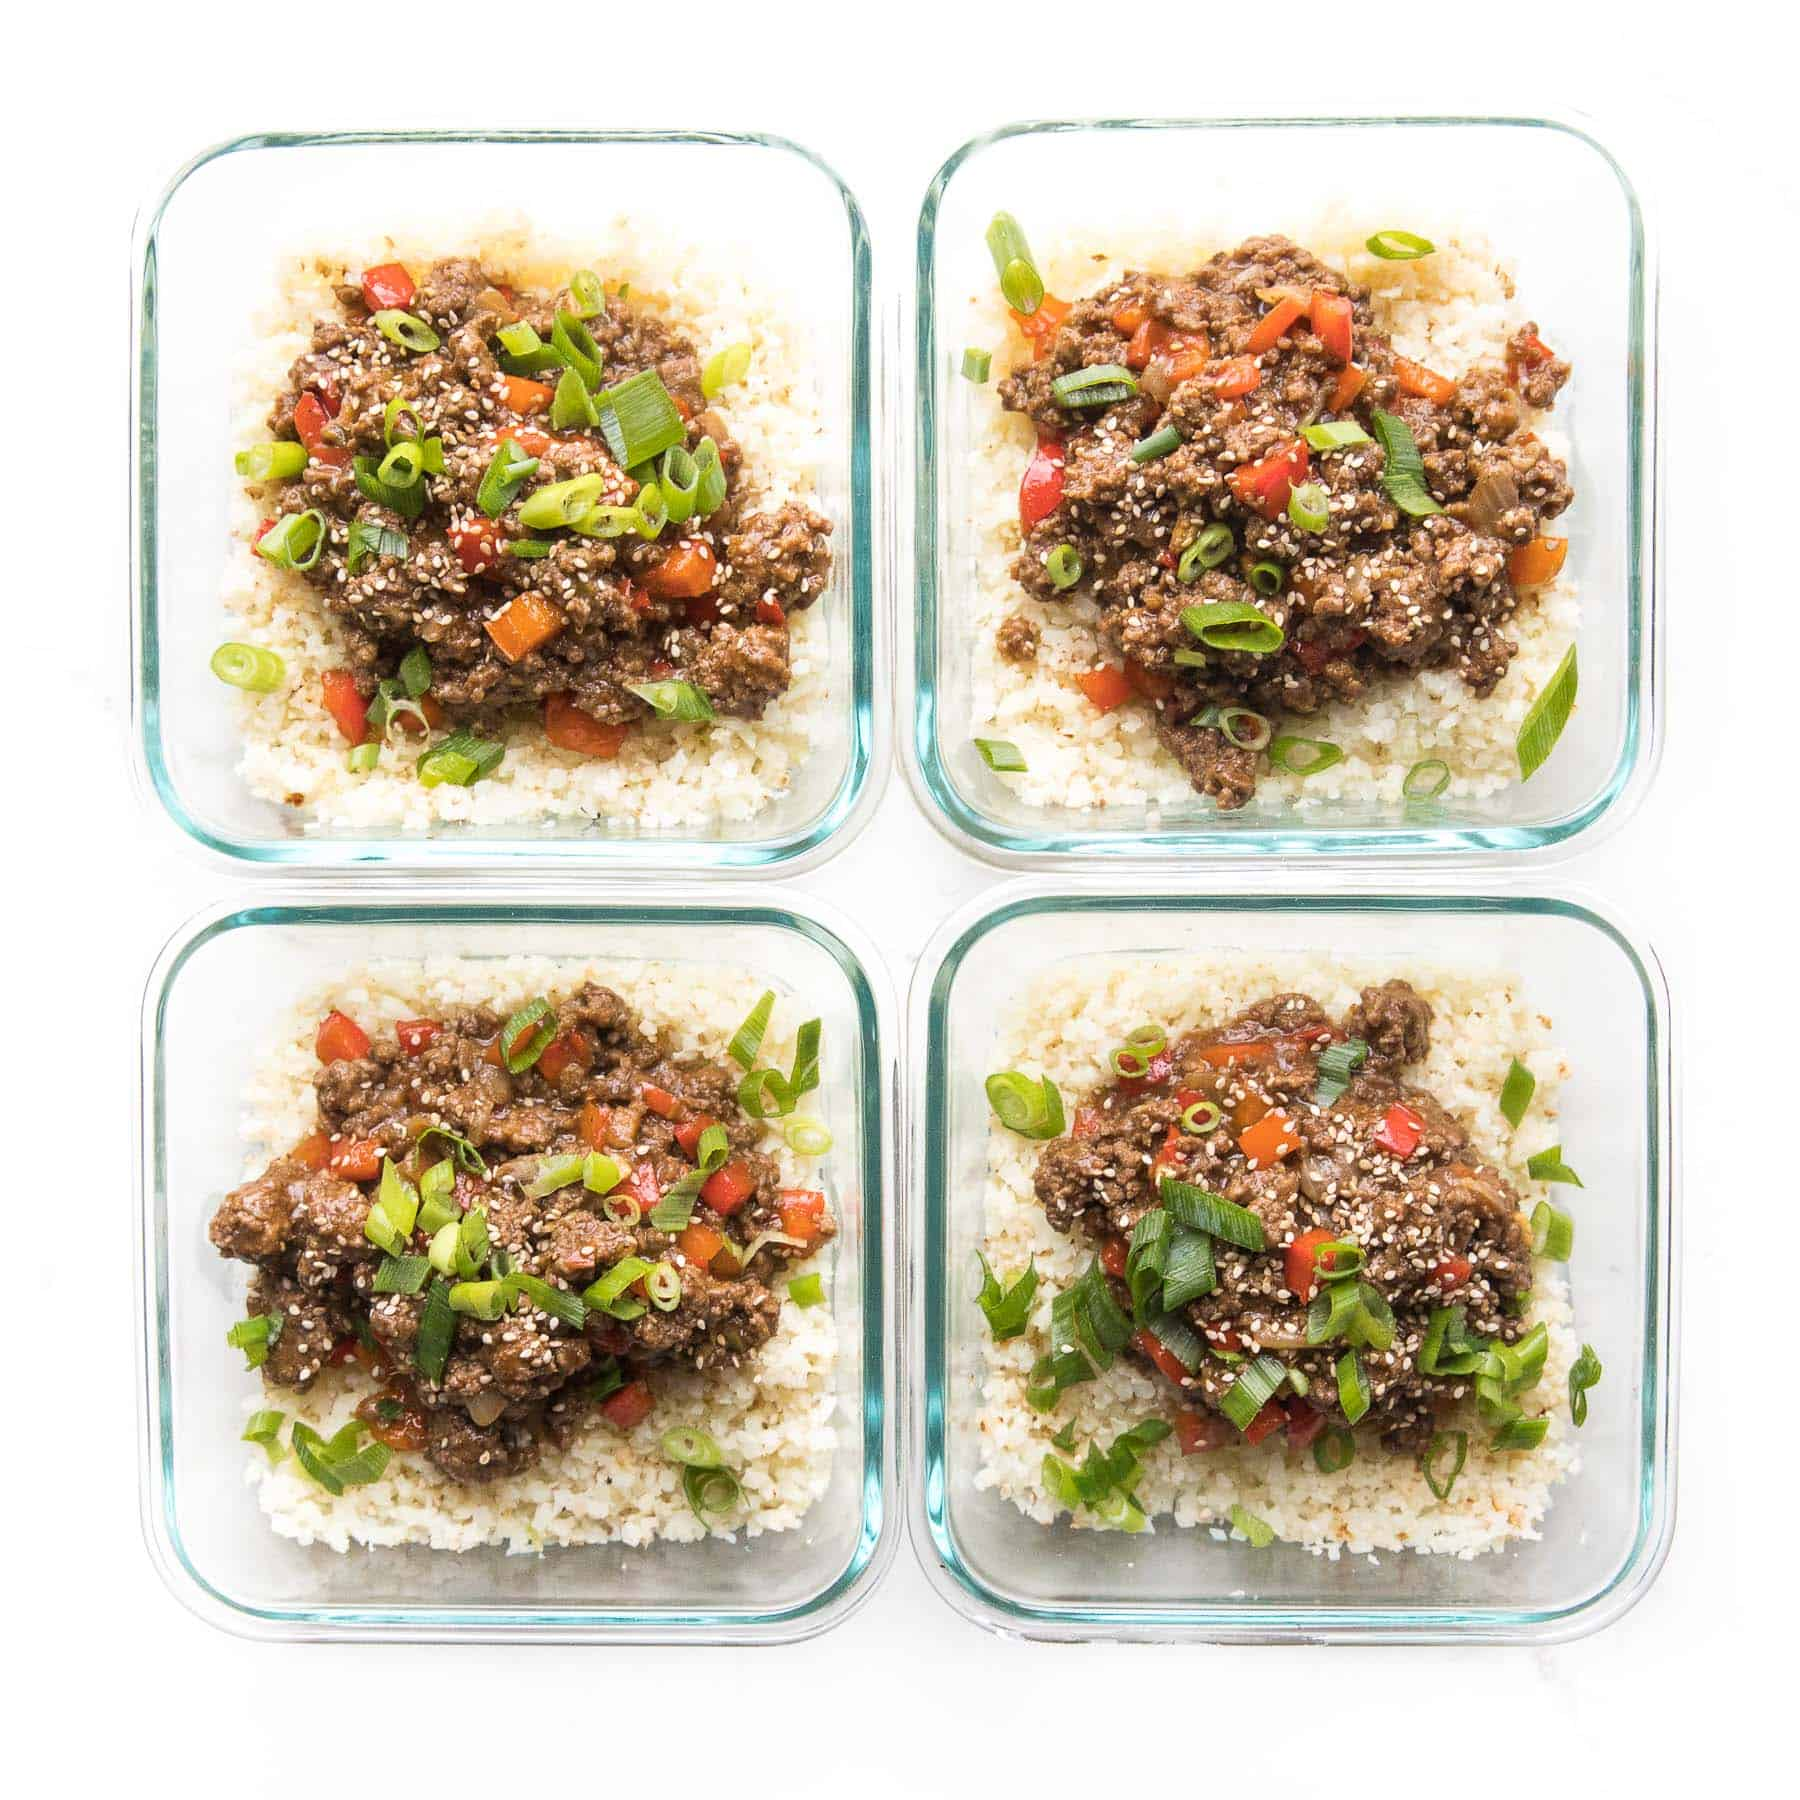 ground asian beef + bell peppers topped with green onions over cauliflower rice in a meal prep container